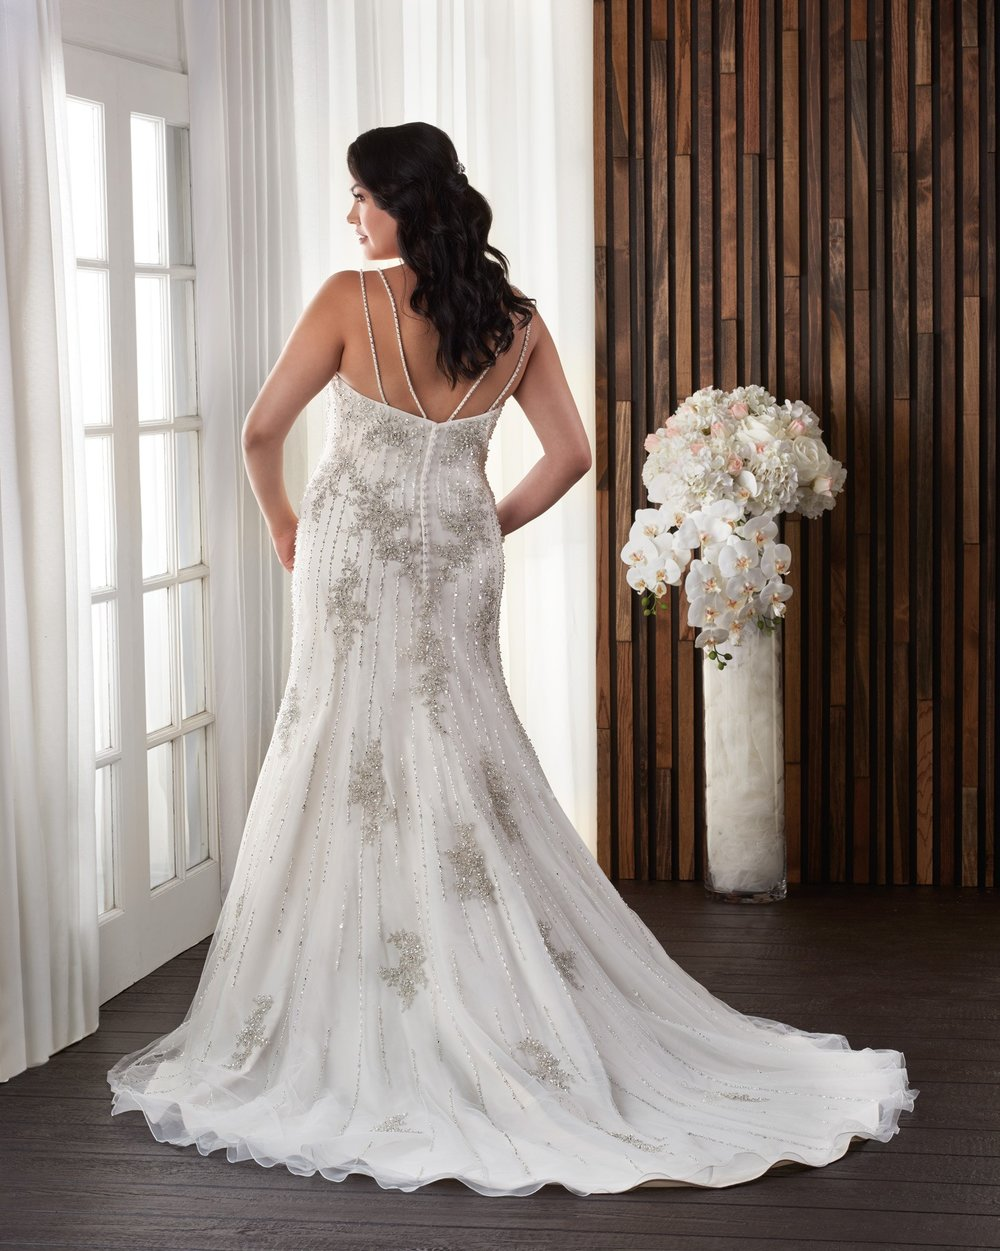 BonnyBridal-BridesbyYoung-PlusSizeWeddingDress-1716-1.jpg